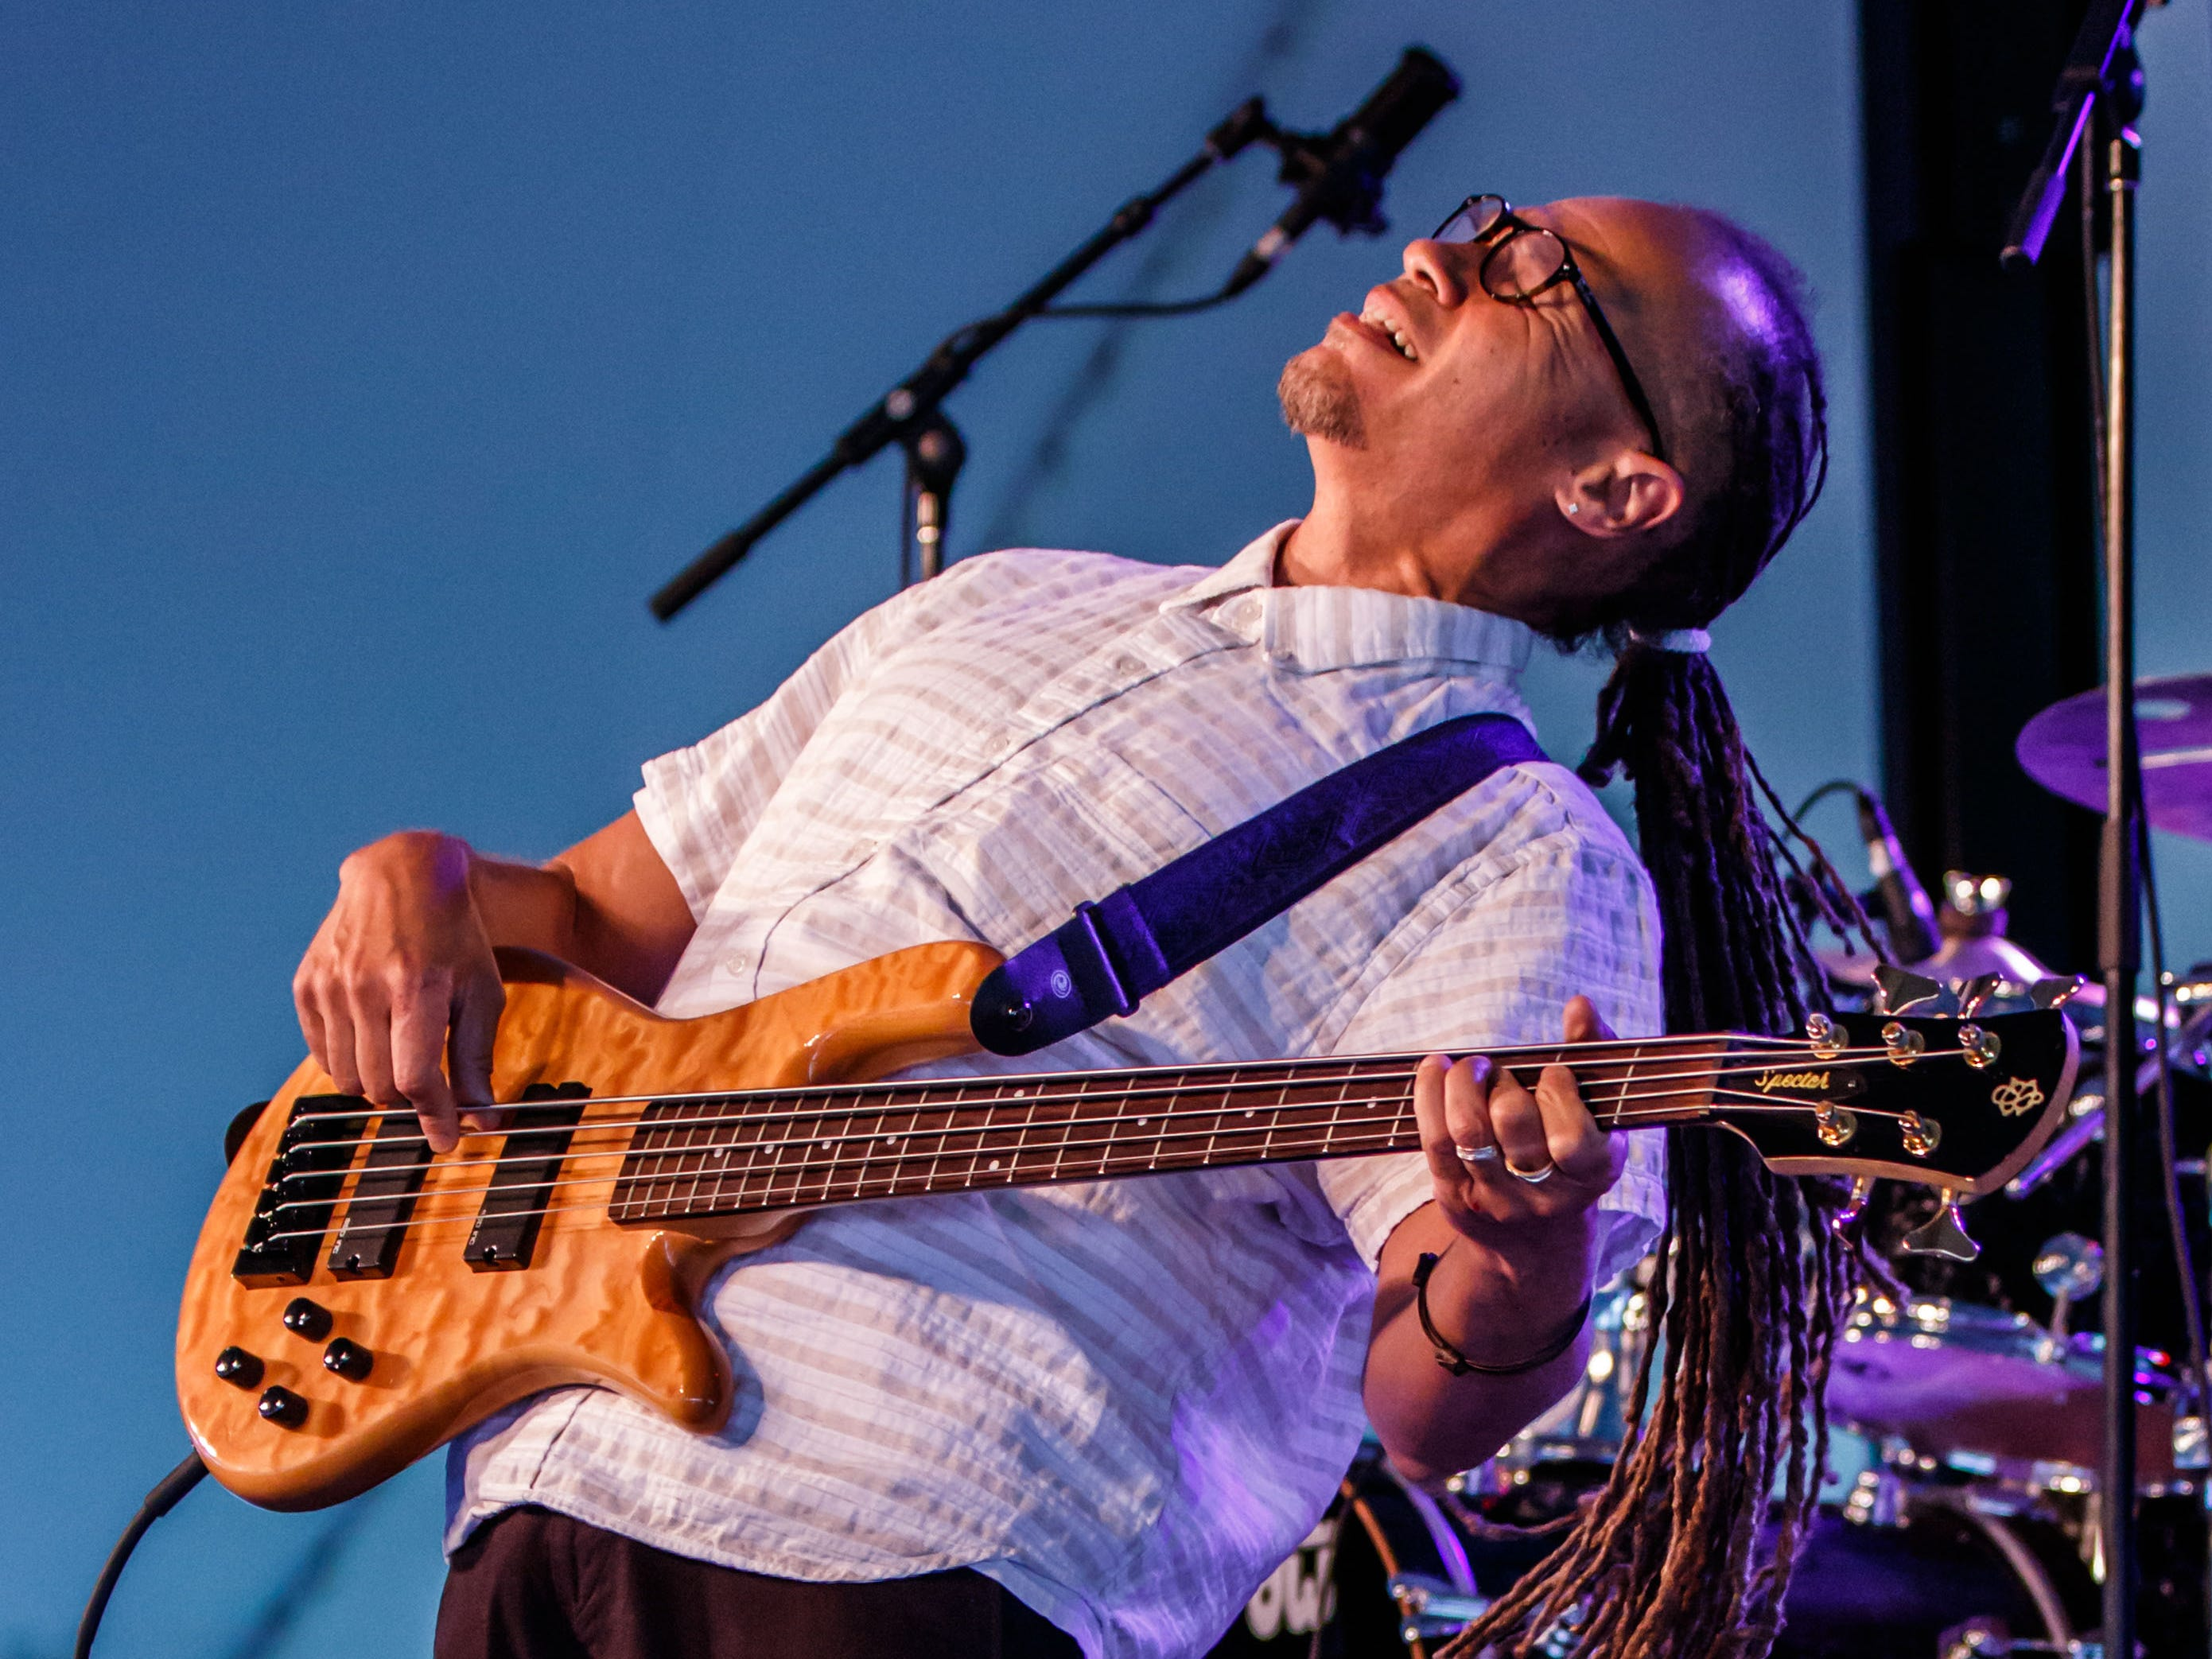 Bassist Lenny Bradford performs with the Joe Louis Walker band at the 12th annual Waukesha Rotary BluesFest in Naga-waukee Park on Friday, August 10, 2018. The annual two-day music and art festival features live music, food and beverages, artist displays and more.